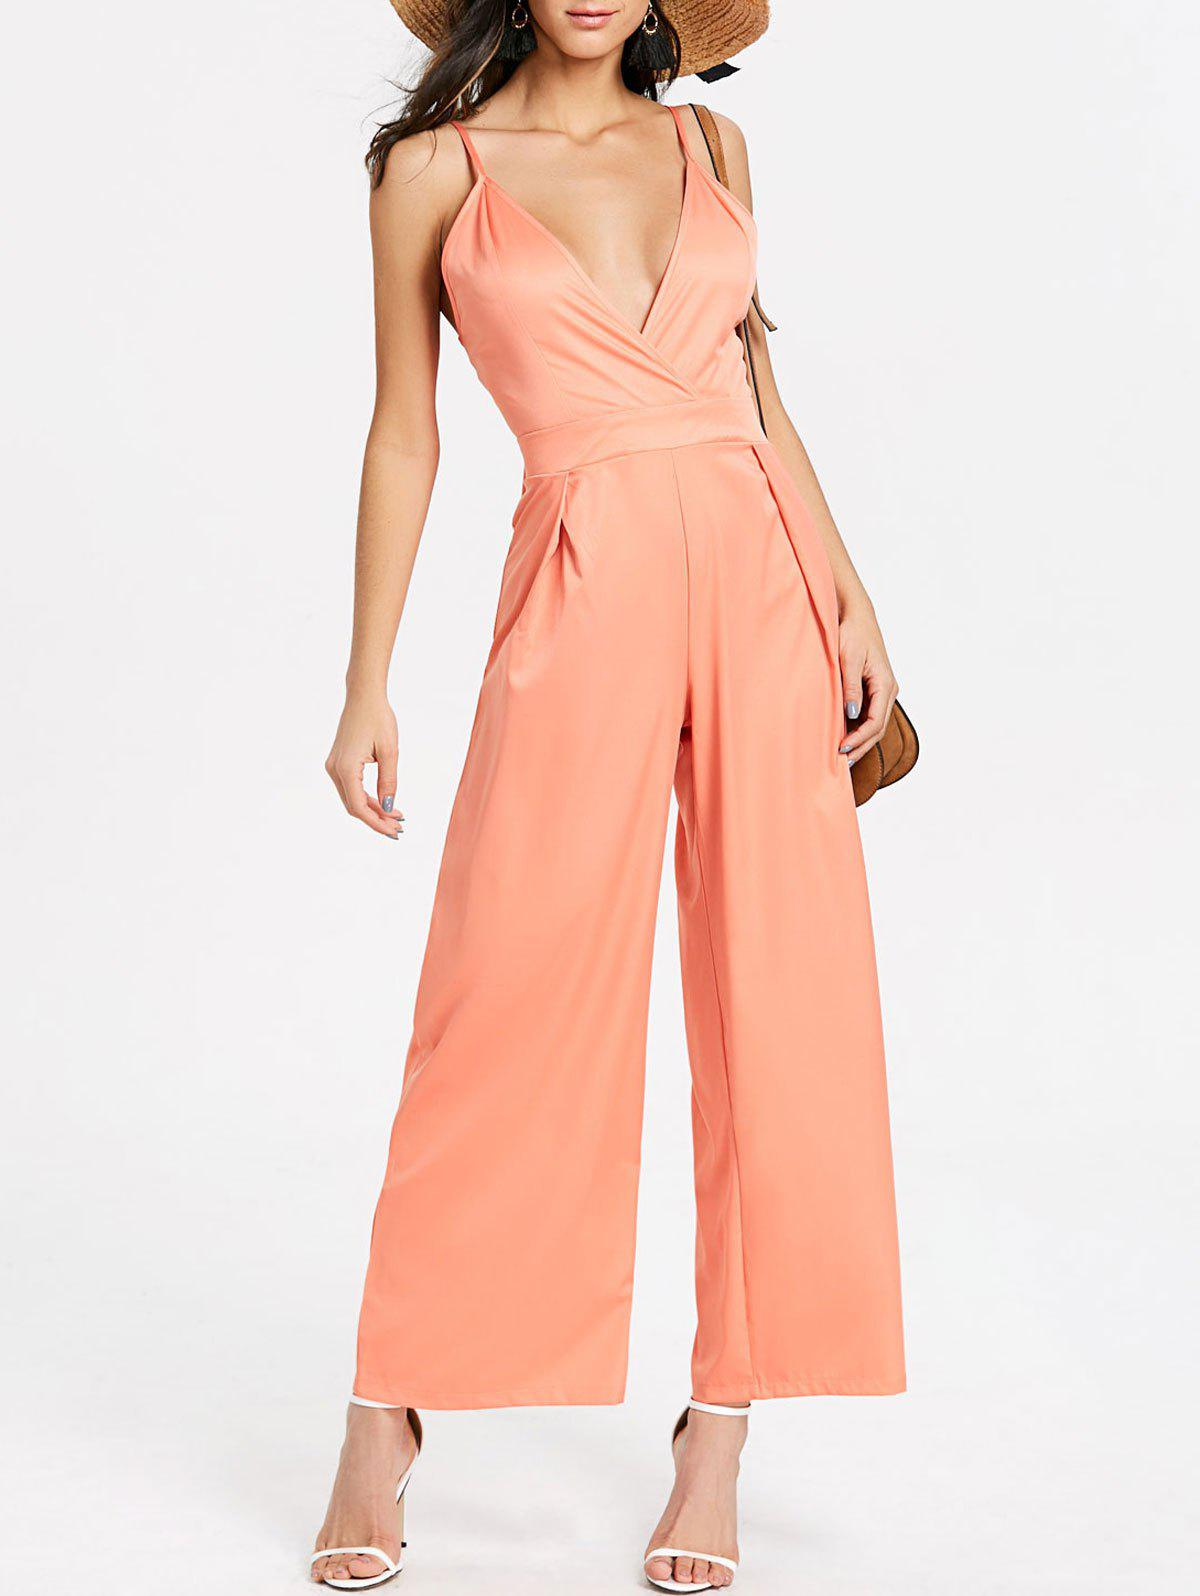 Backless Spaghetti Strap Jumpsuit - PINK S